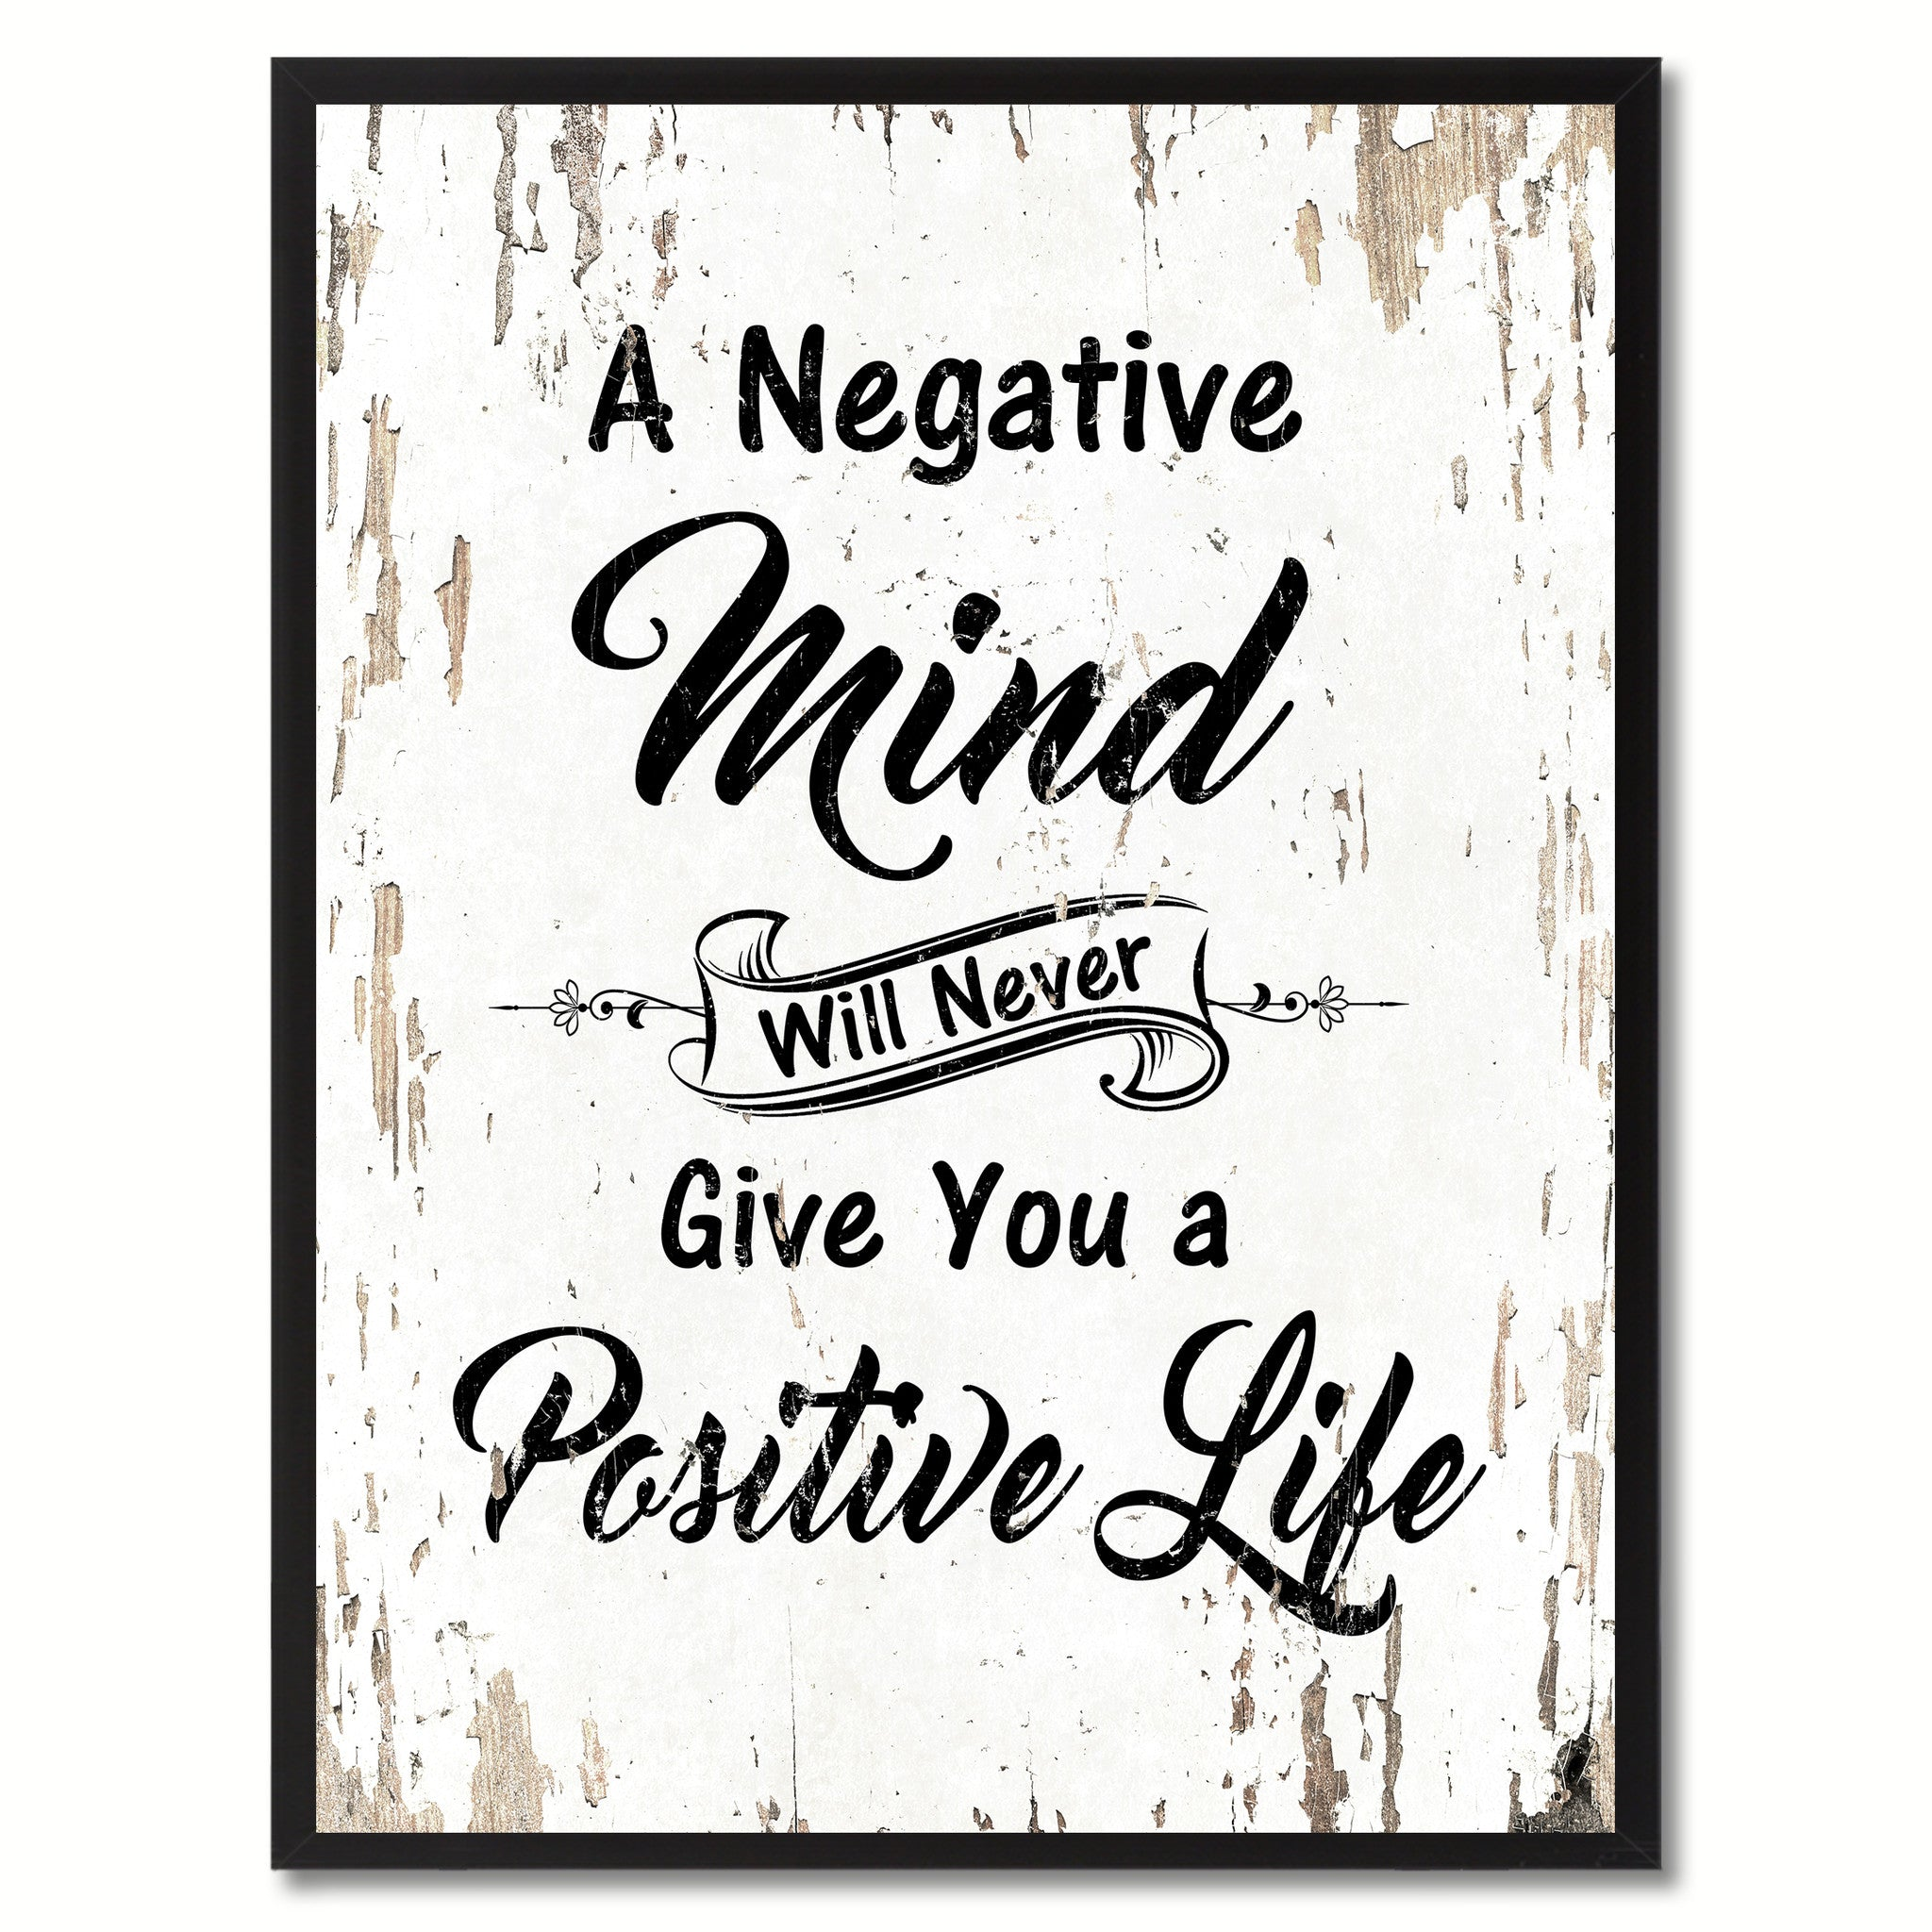 A negative mind will never give you a positive life Inspirational Quote Saying Gift Ideas Home Decor Wall Art